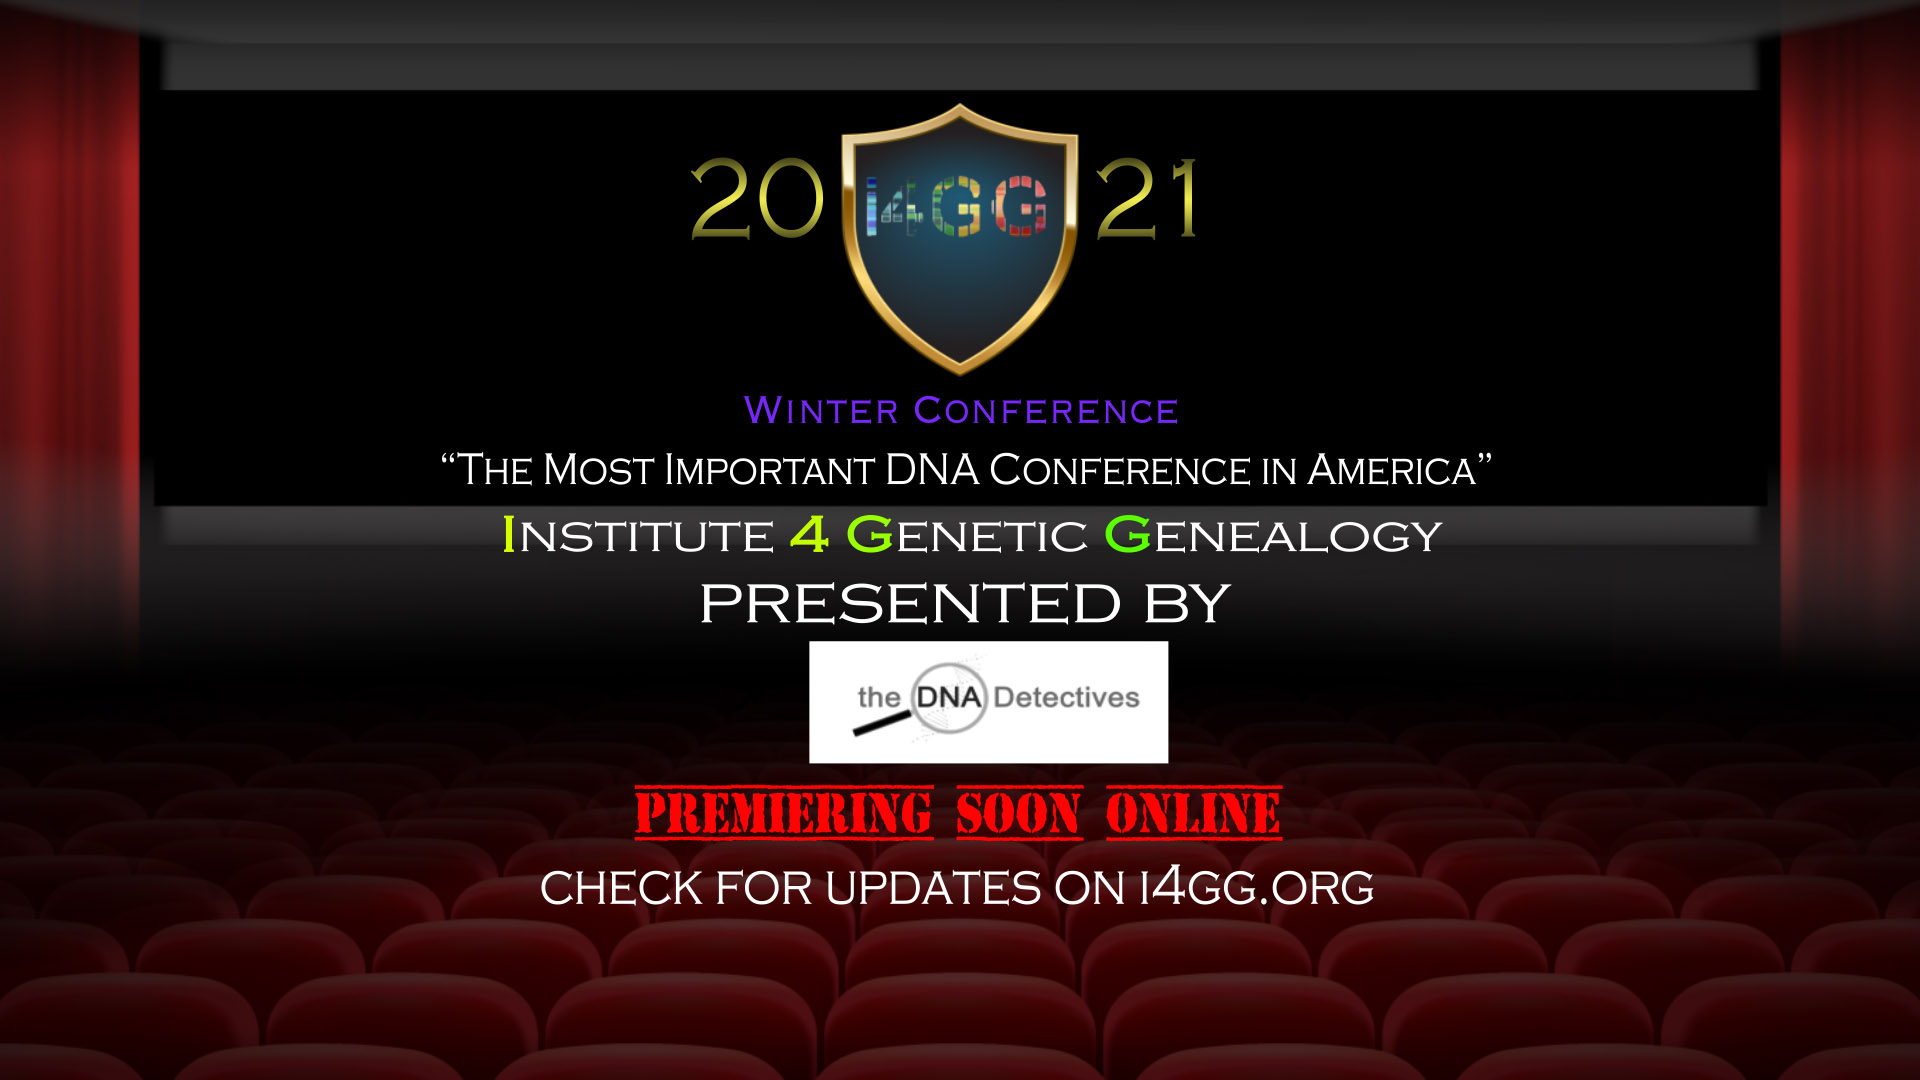 institute 4 genetic genealogy